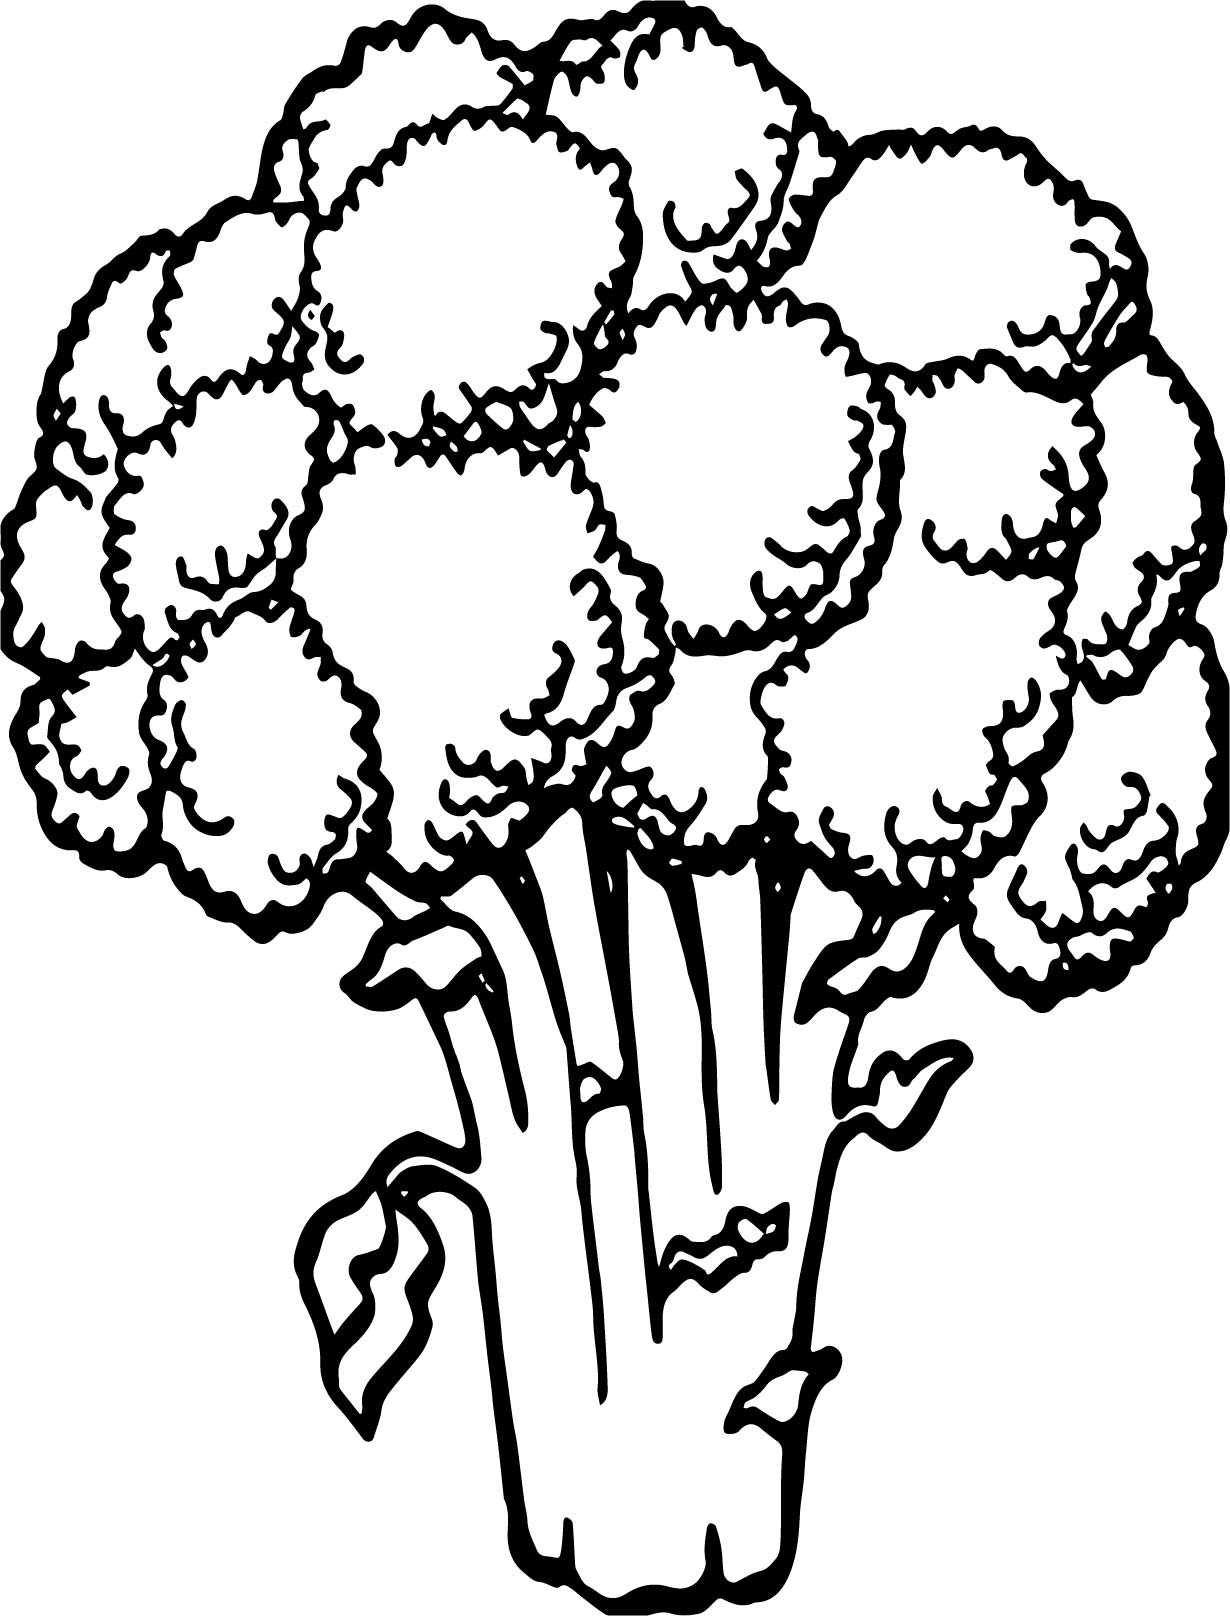 Vegetable Cauliflower Coloring Page